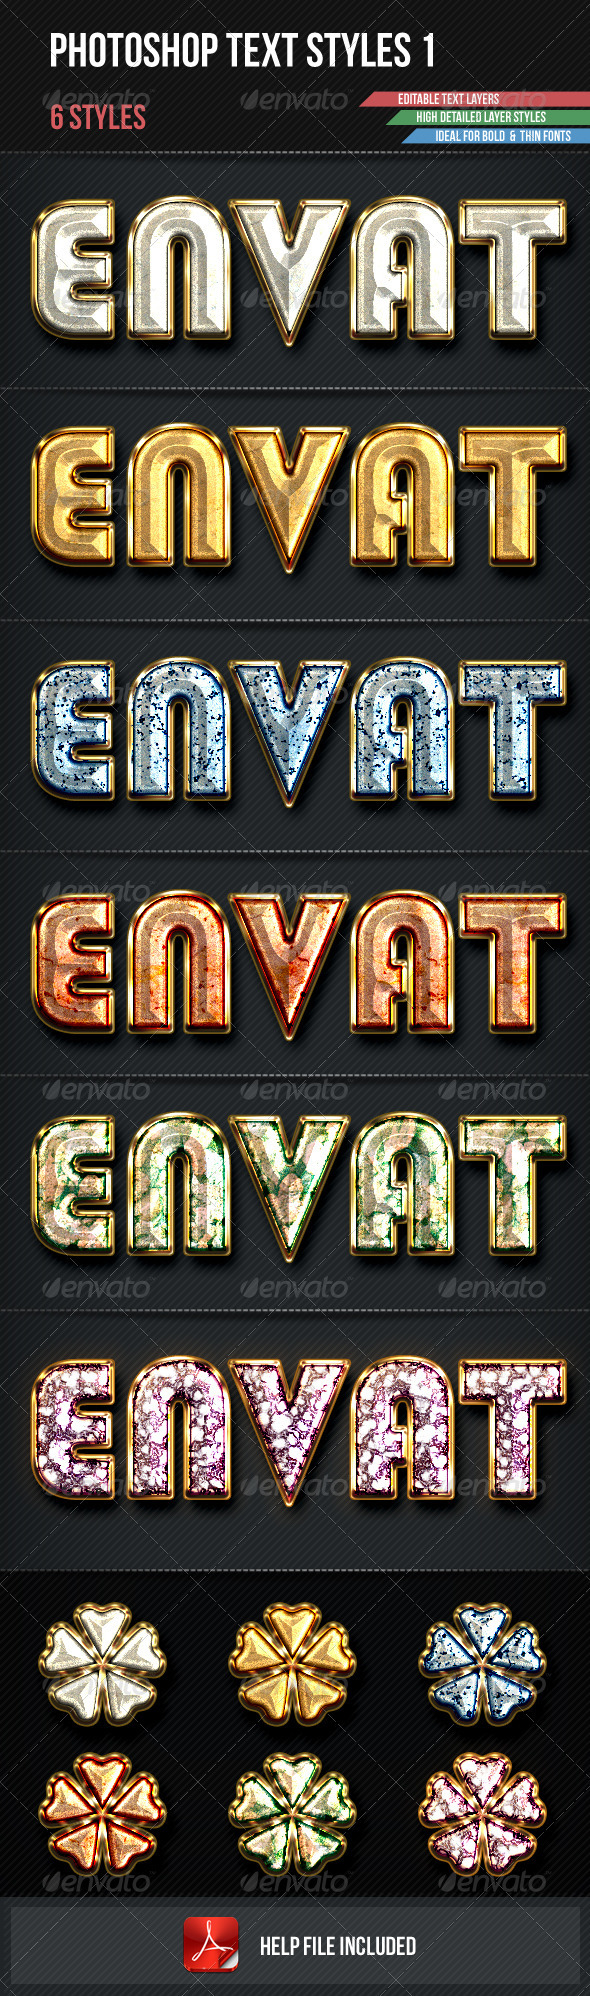 GraphicRiver Photoshop Text Styles 1 3300422